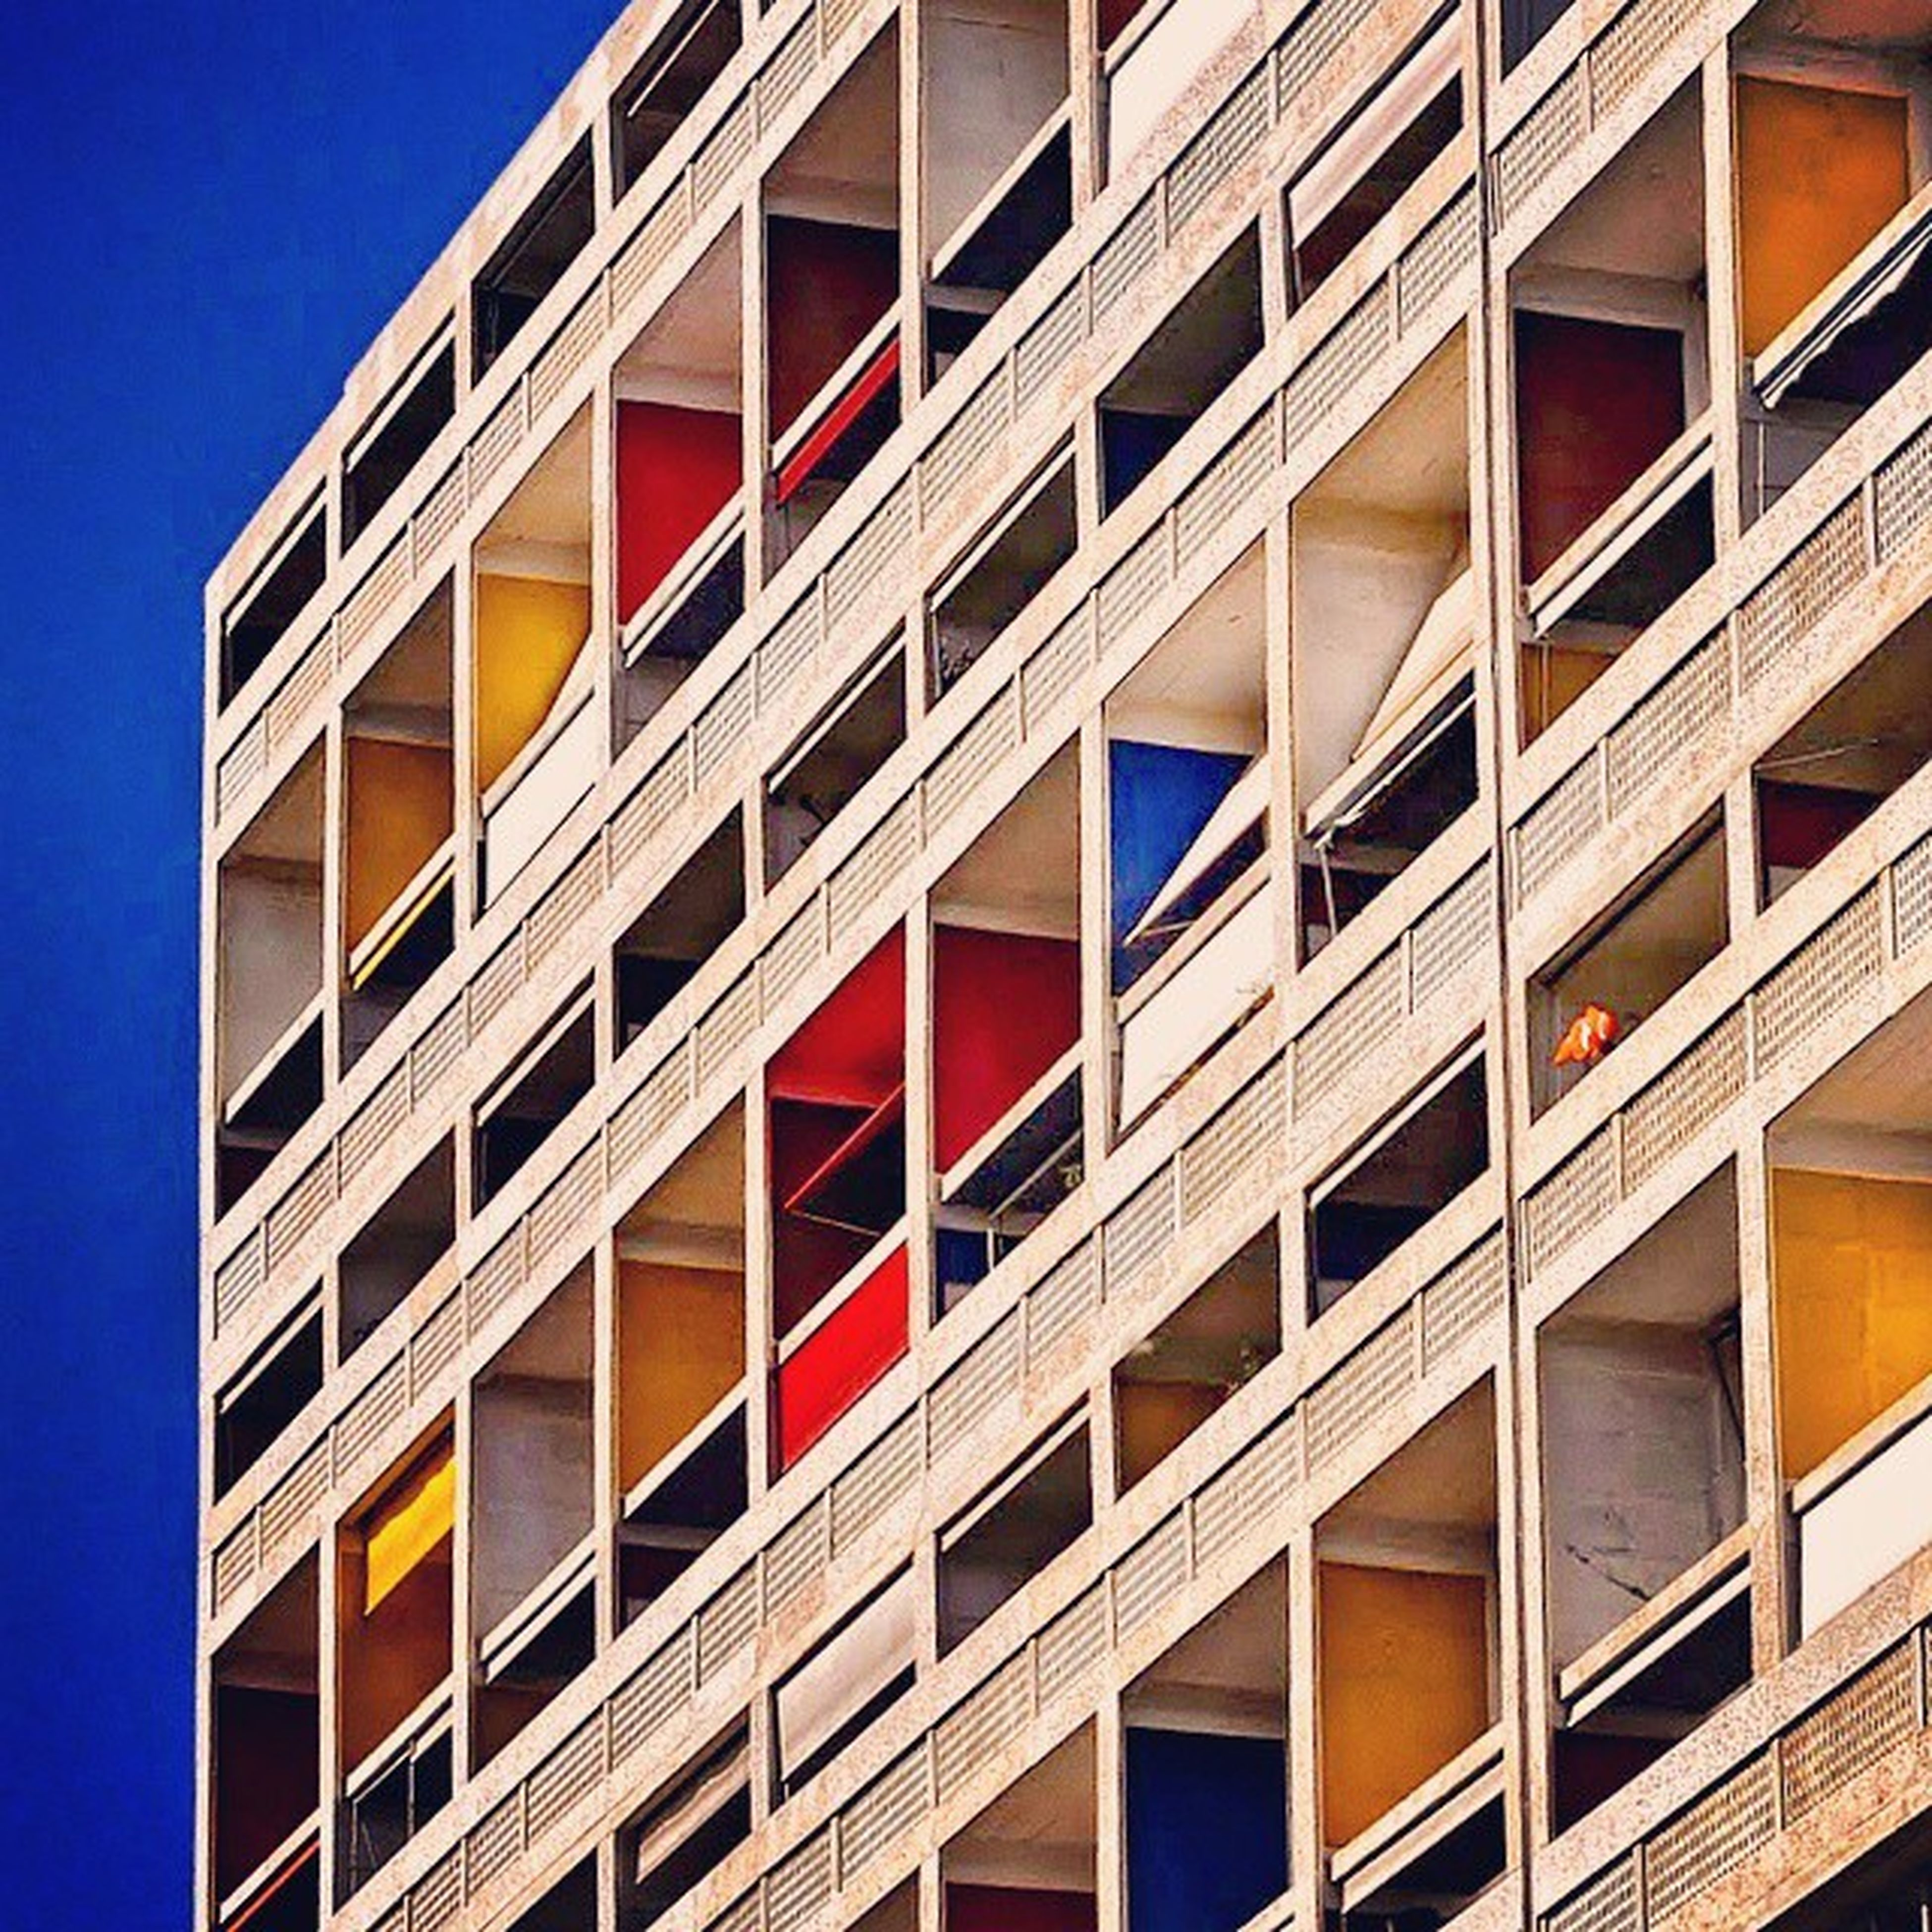 architecture, building exterior, built structure, low angle view, window, building, clear sky, modern, city, blue, office building, repetition, residential building, residential structure, outdoors, reflection, day, apartment, glass - material, no people